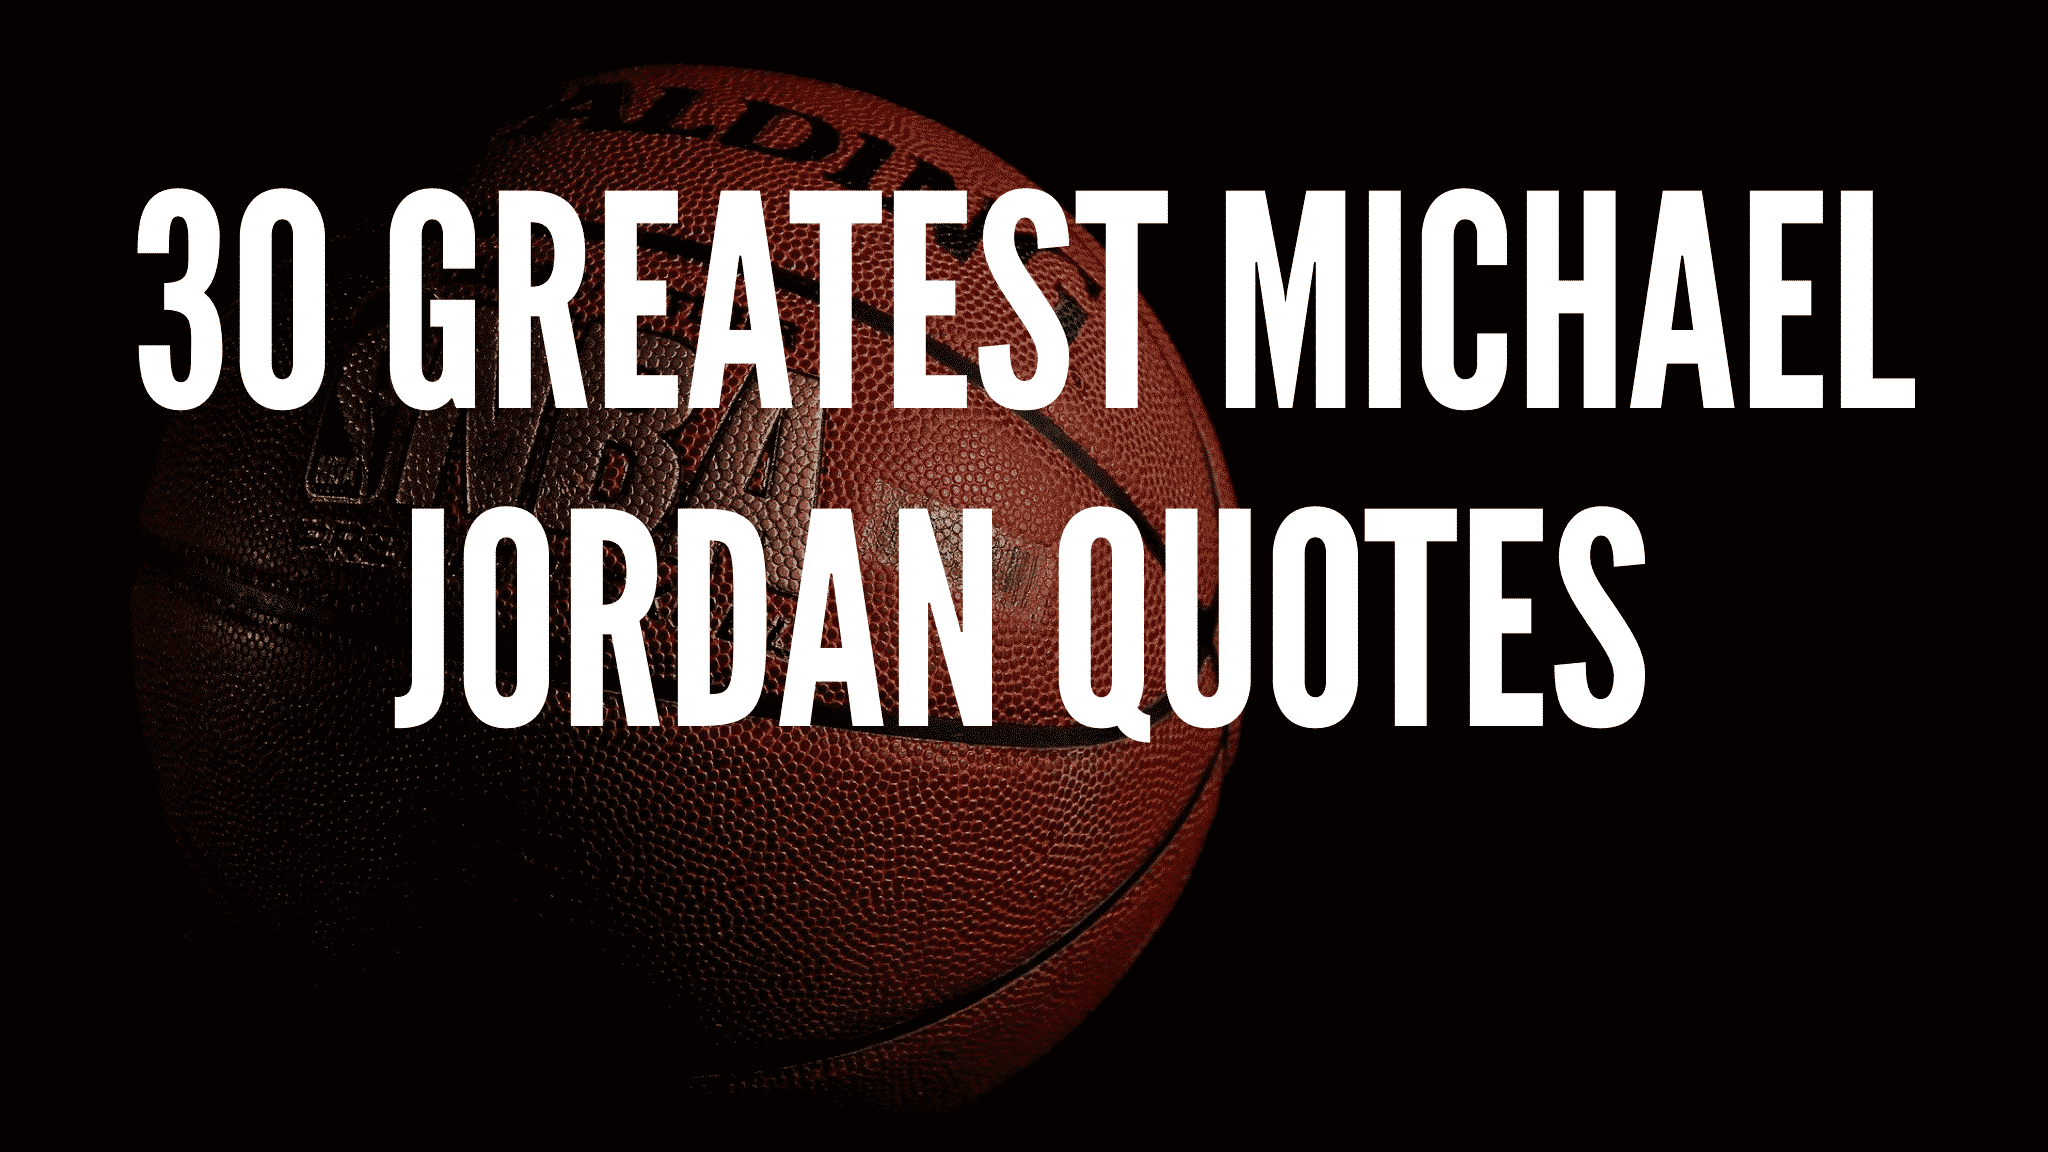 Greatest Michael Jordan Quotes